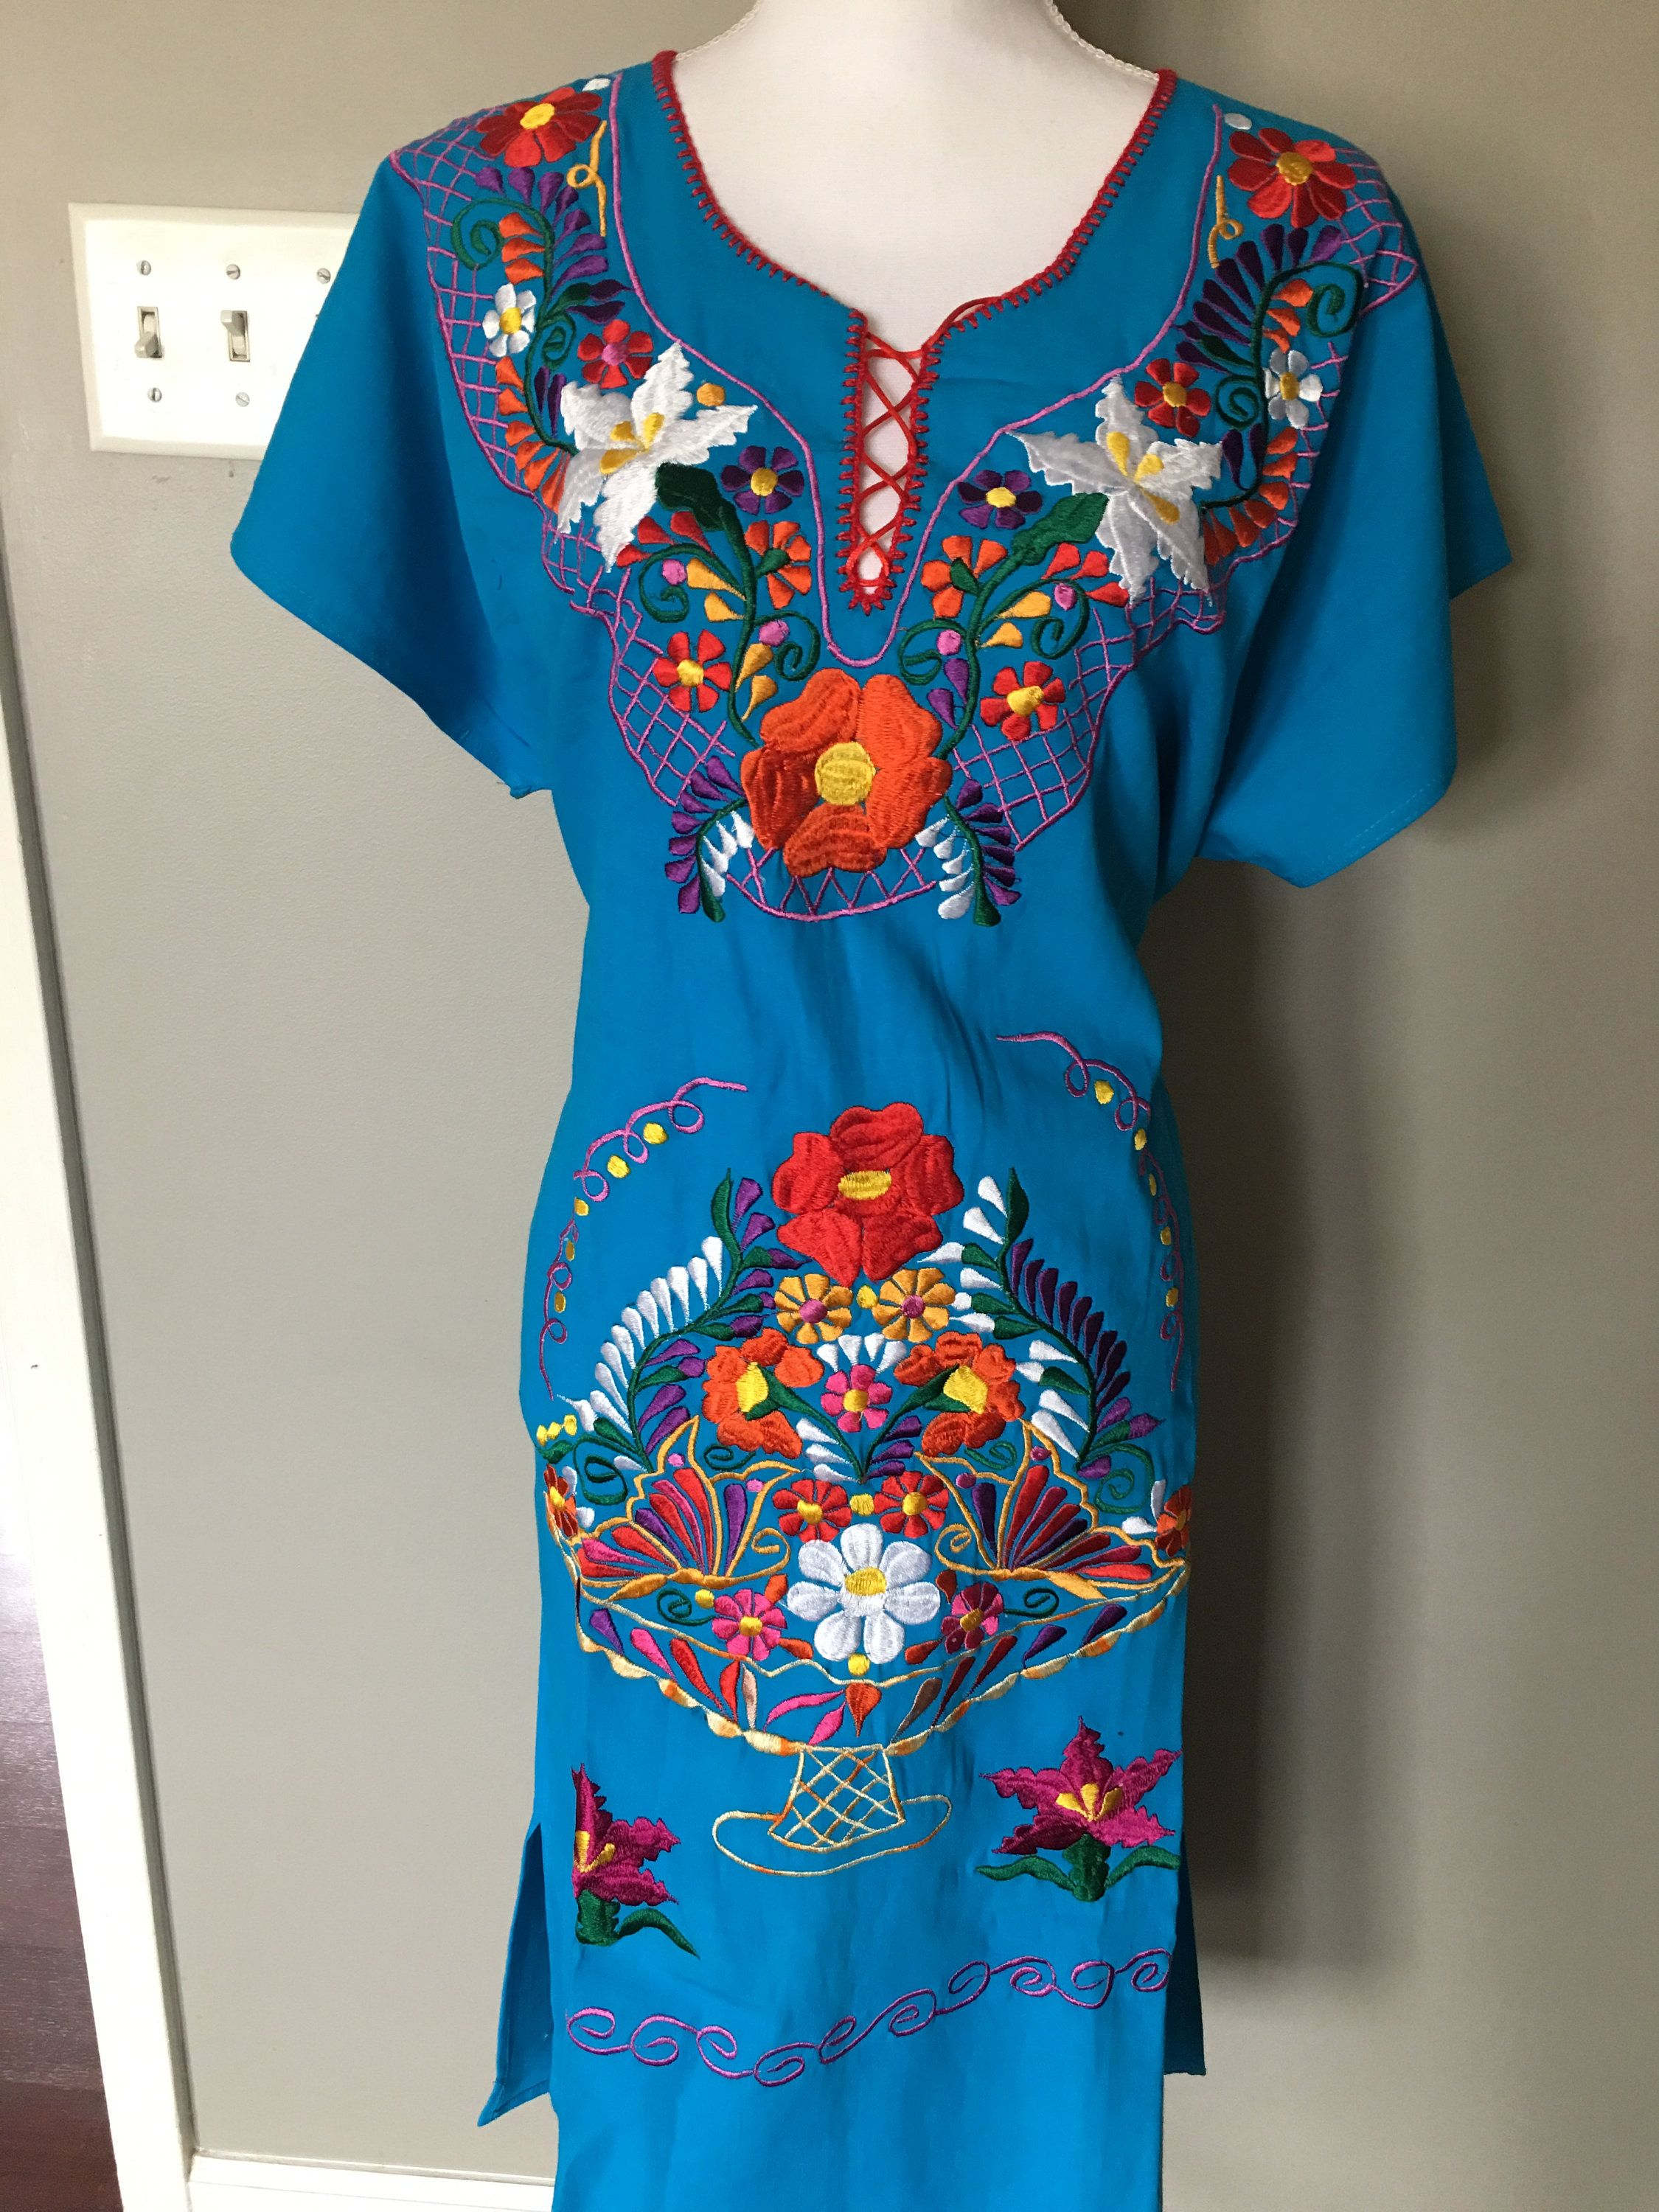 Handmade Mexican Dress. Beautiful Traditional Blue Dress Mexican Colorful Embroidered Dress